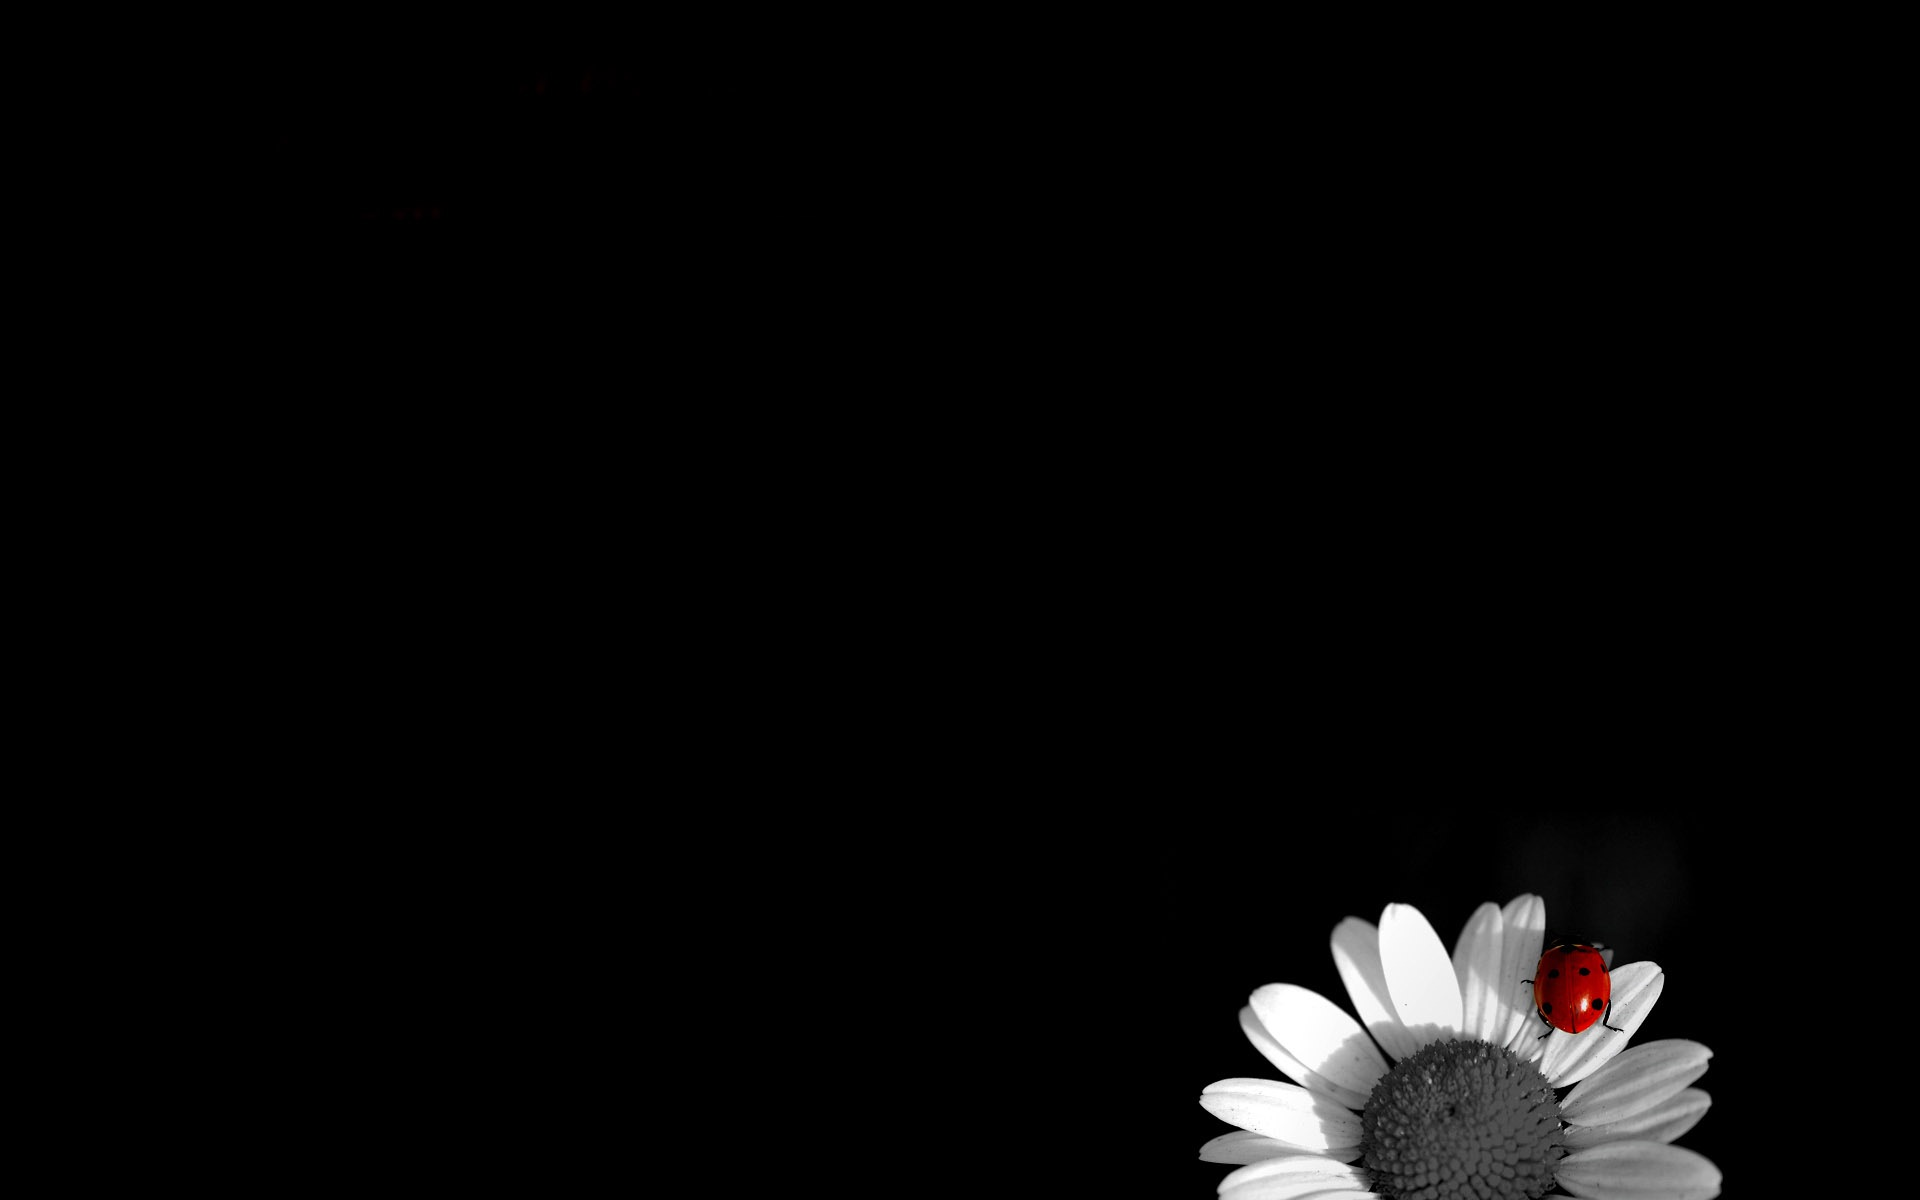 Black And White Hd Wallpapers